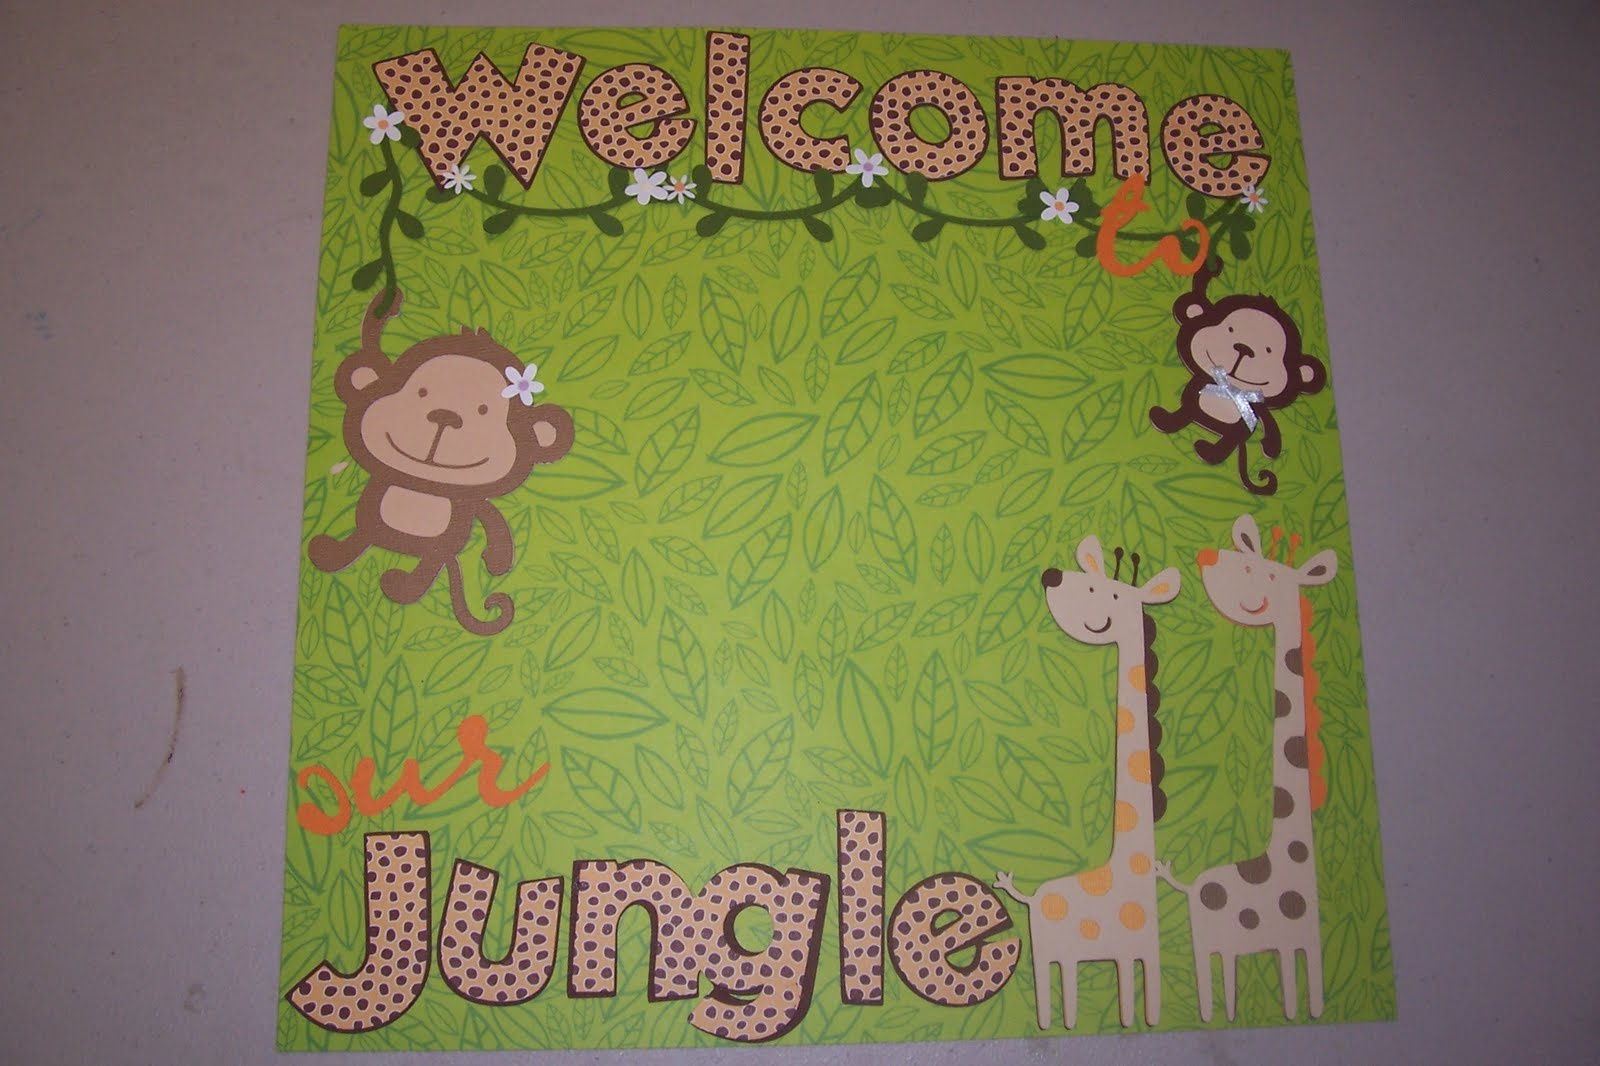 Jungle scrapbook ideas - I Have Needed To Start This Jungle Themed Baby Album For Weeks Now What A Perfect Excuse Every Critter On This Cartridge Is Adorable